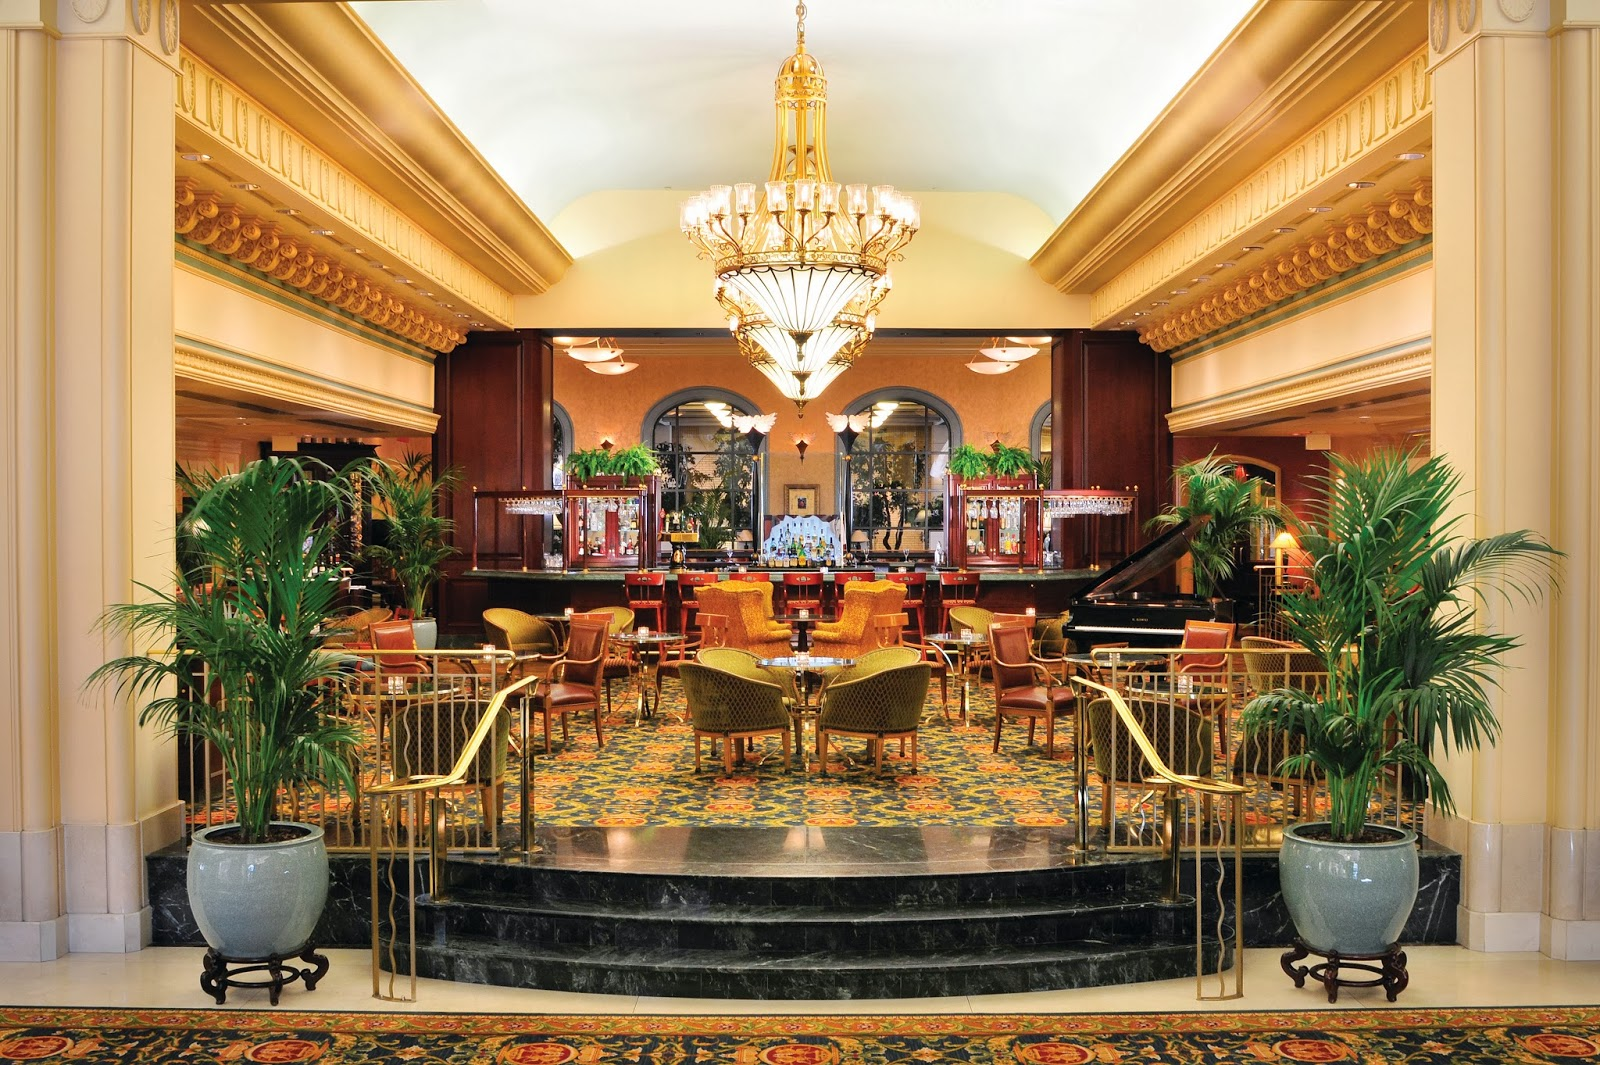 The fairmont hotel vancouver to undergo 12 million for Design hotel vancouver